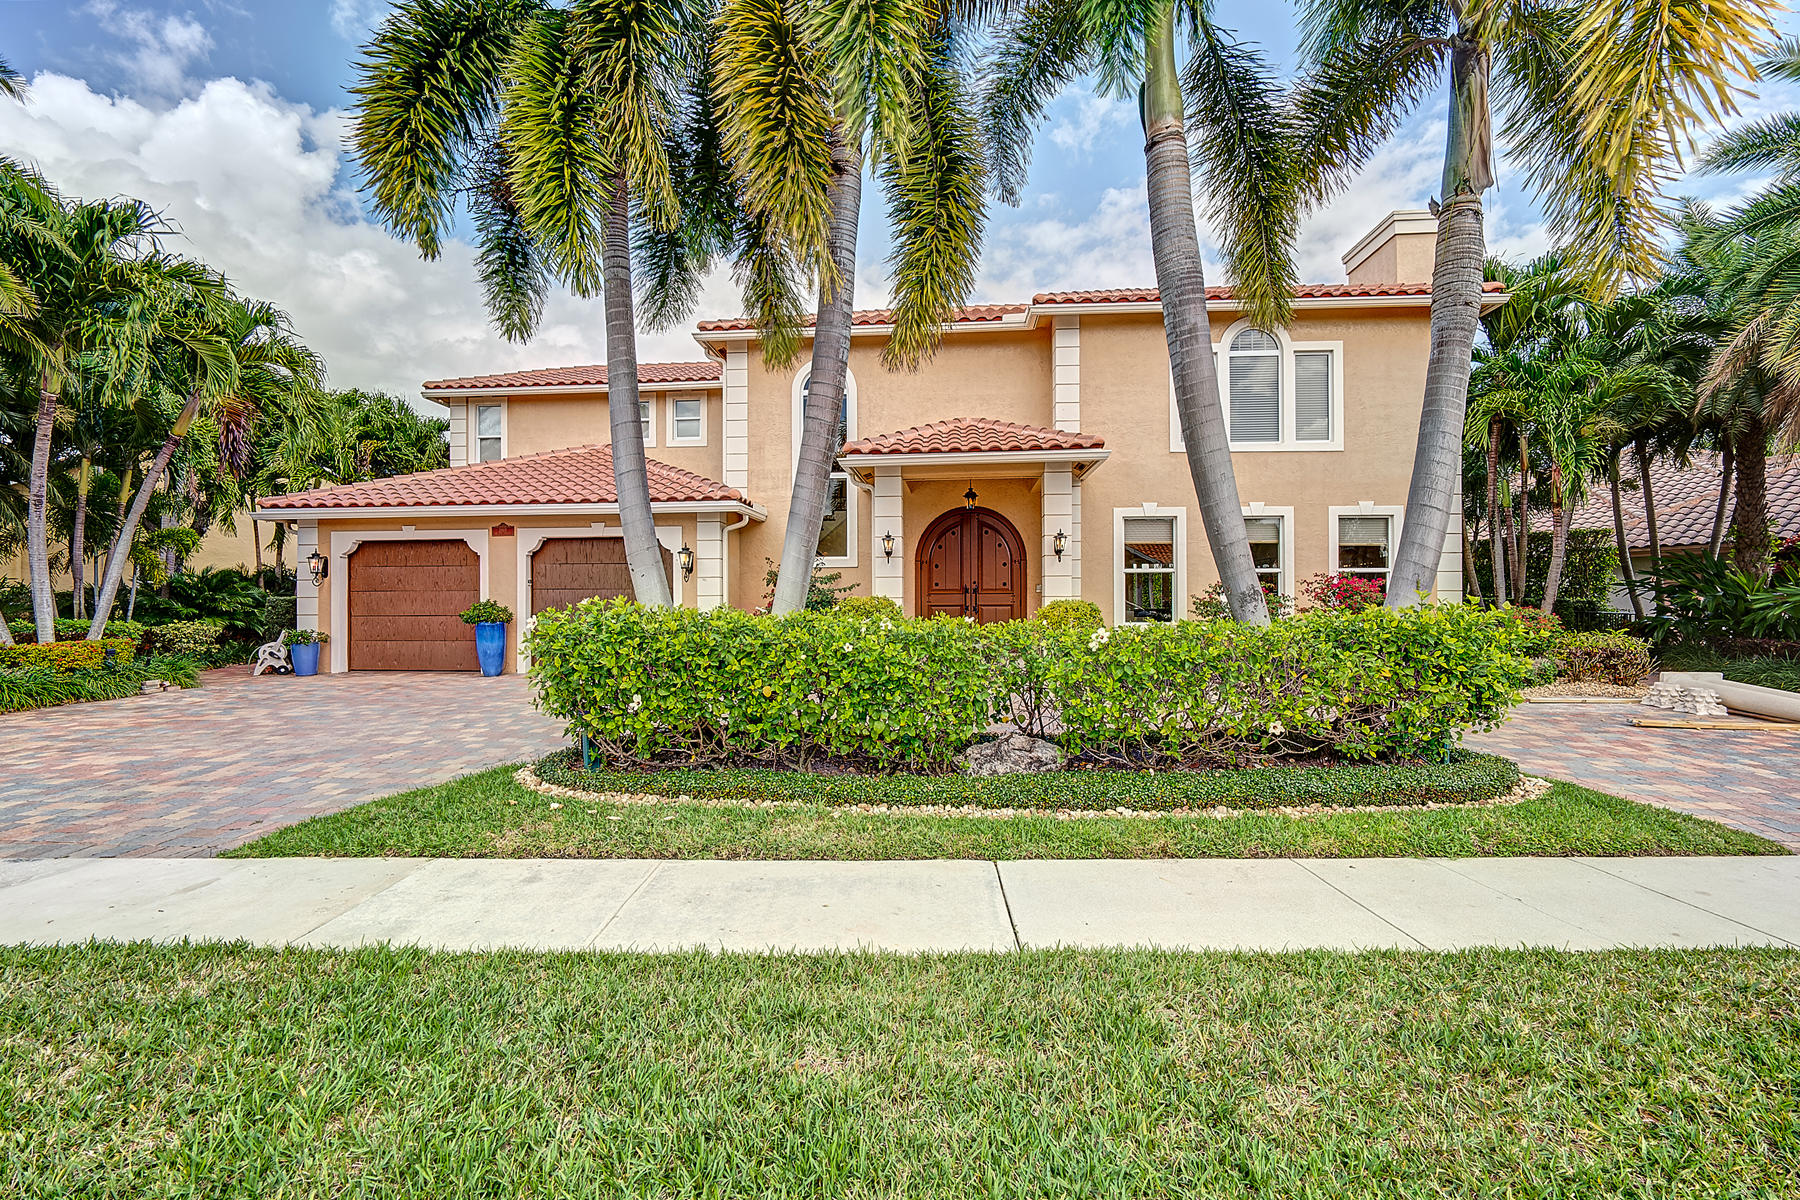 Home for sale in Boca Sailing Boca Raton Florida